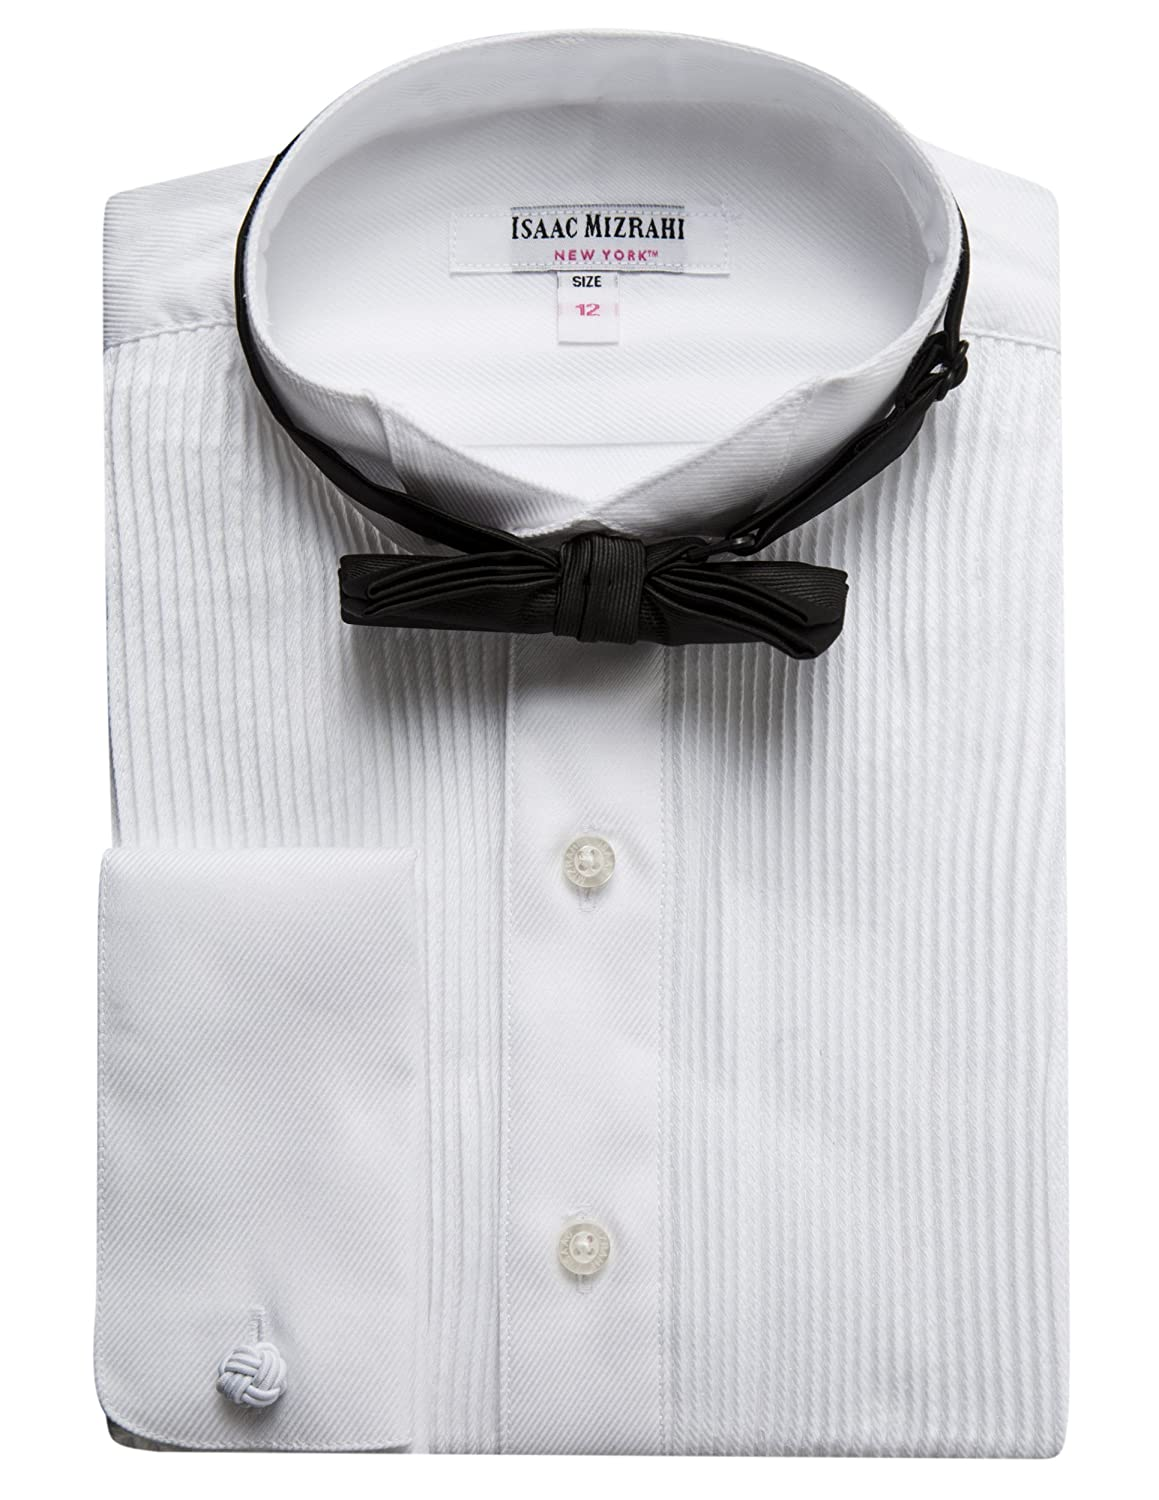 Isaac Mizrahi Boys 100% Cotton French Cuff Twill Wing Tip Collar Tuxedo Shirt (Cufflink Included)